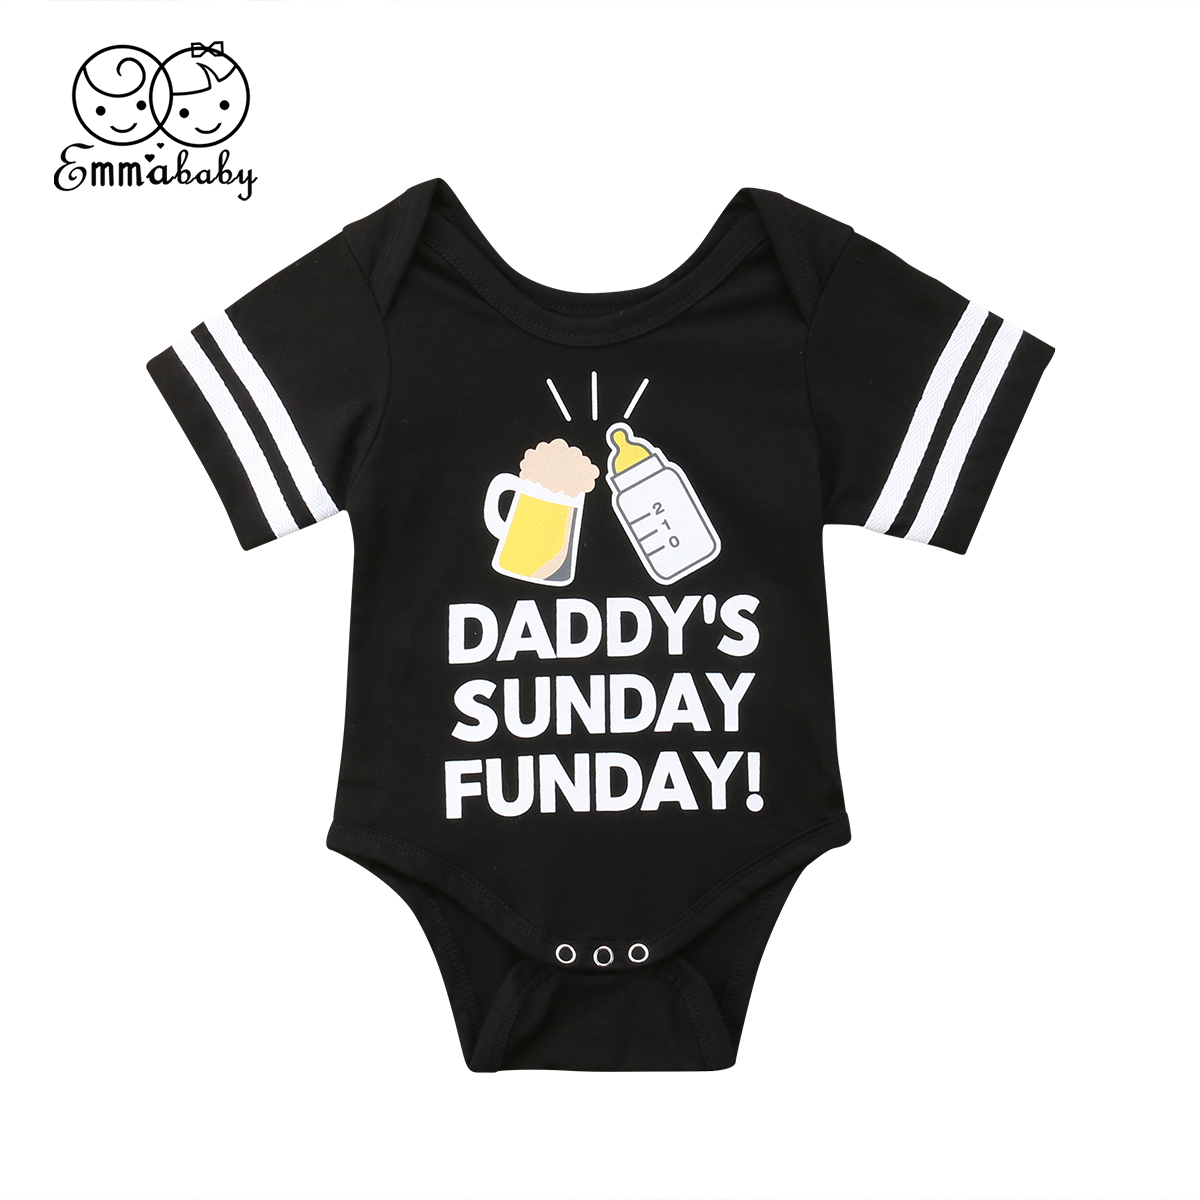 Fashion Newborn Baby Boy Girl Casual Black Beer Nipple Romper Jumpsuit Cotton Clothes -2645